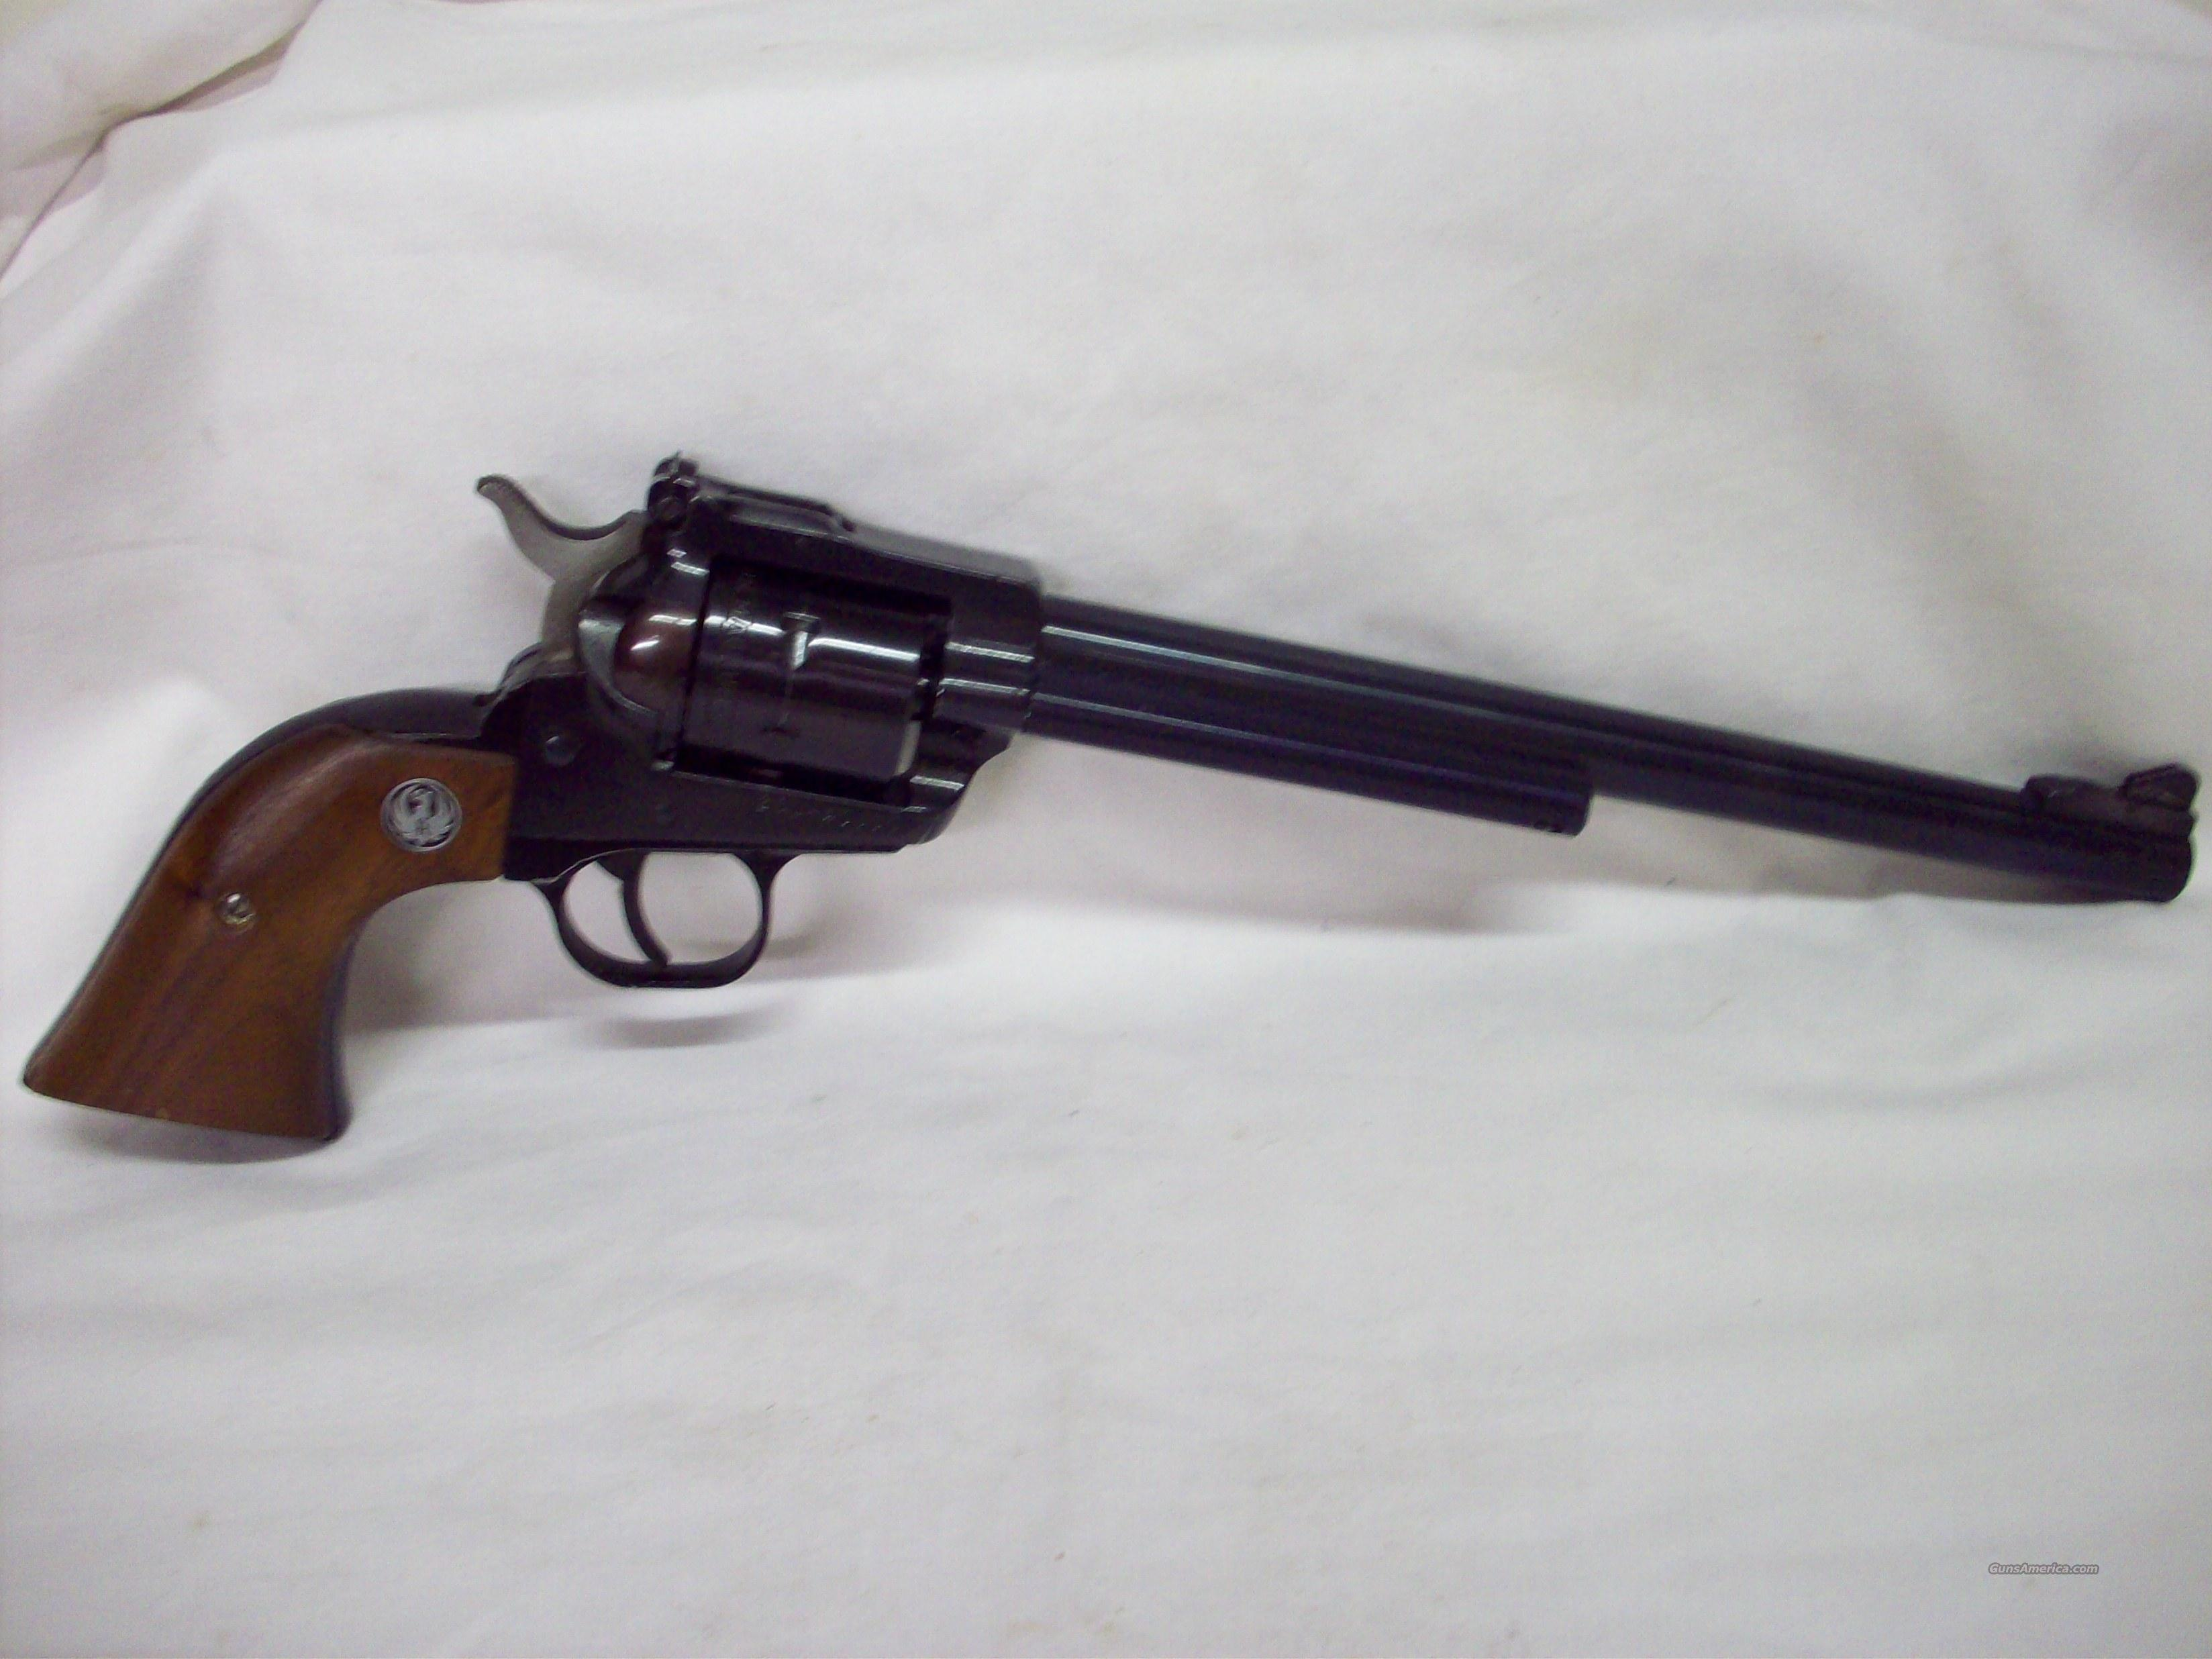 dating my ruger single six Ruger grips / blackhawk  super blackhawk, single six  you'll find centuries-old examples of kingwood in fine furniture and small turned items dating back to .